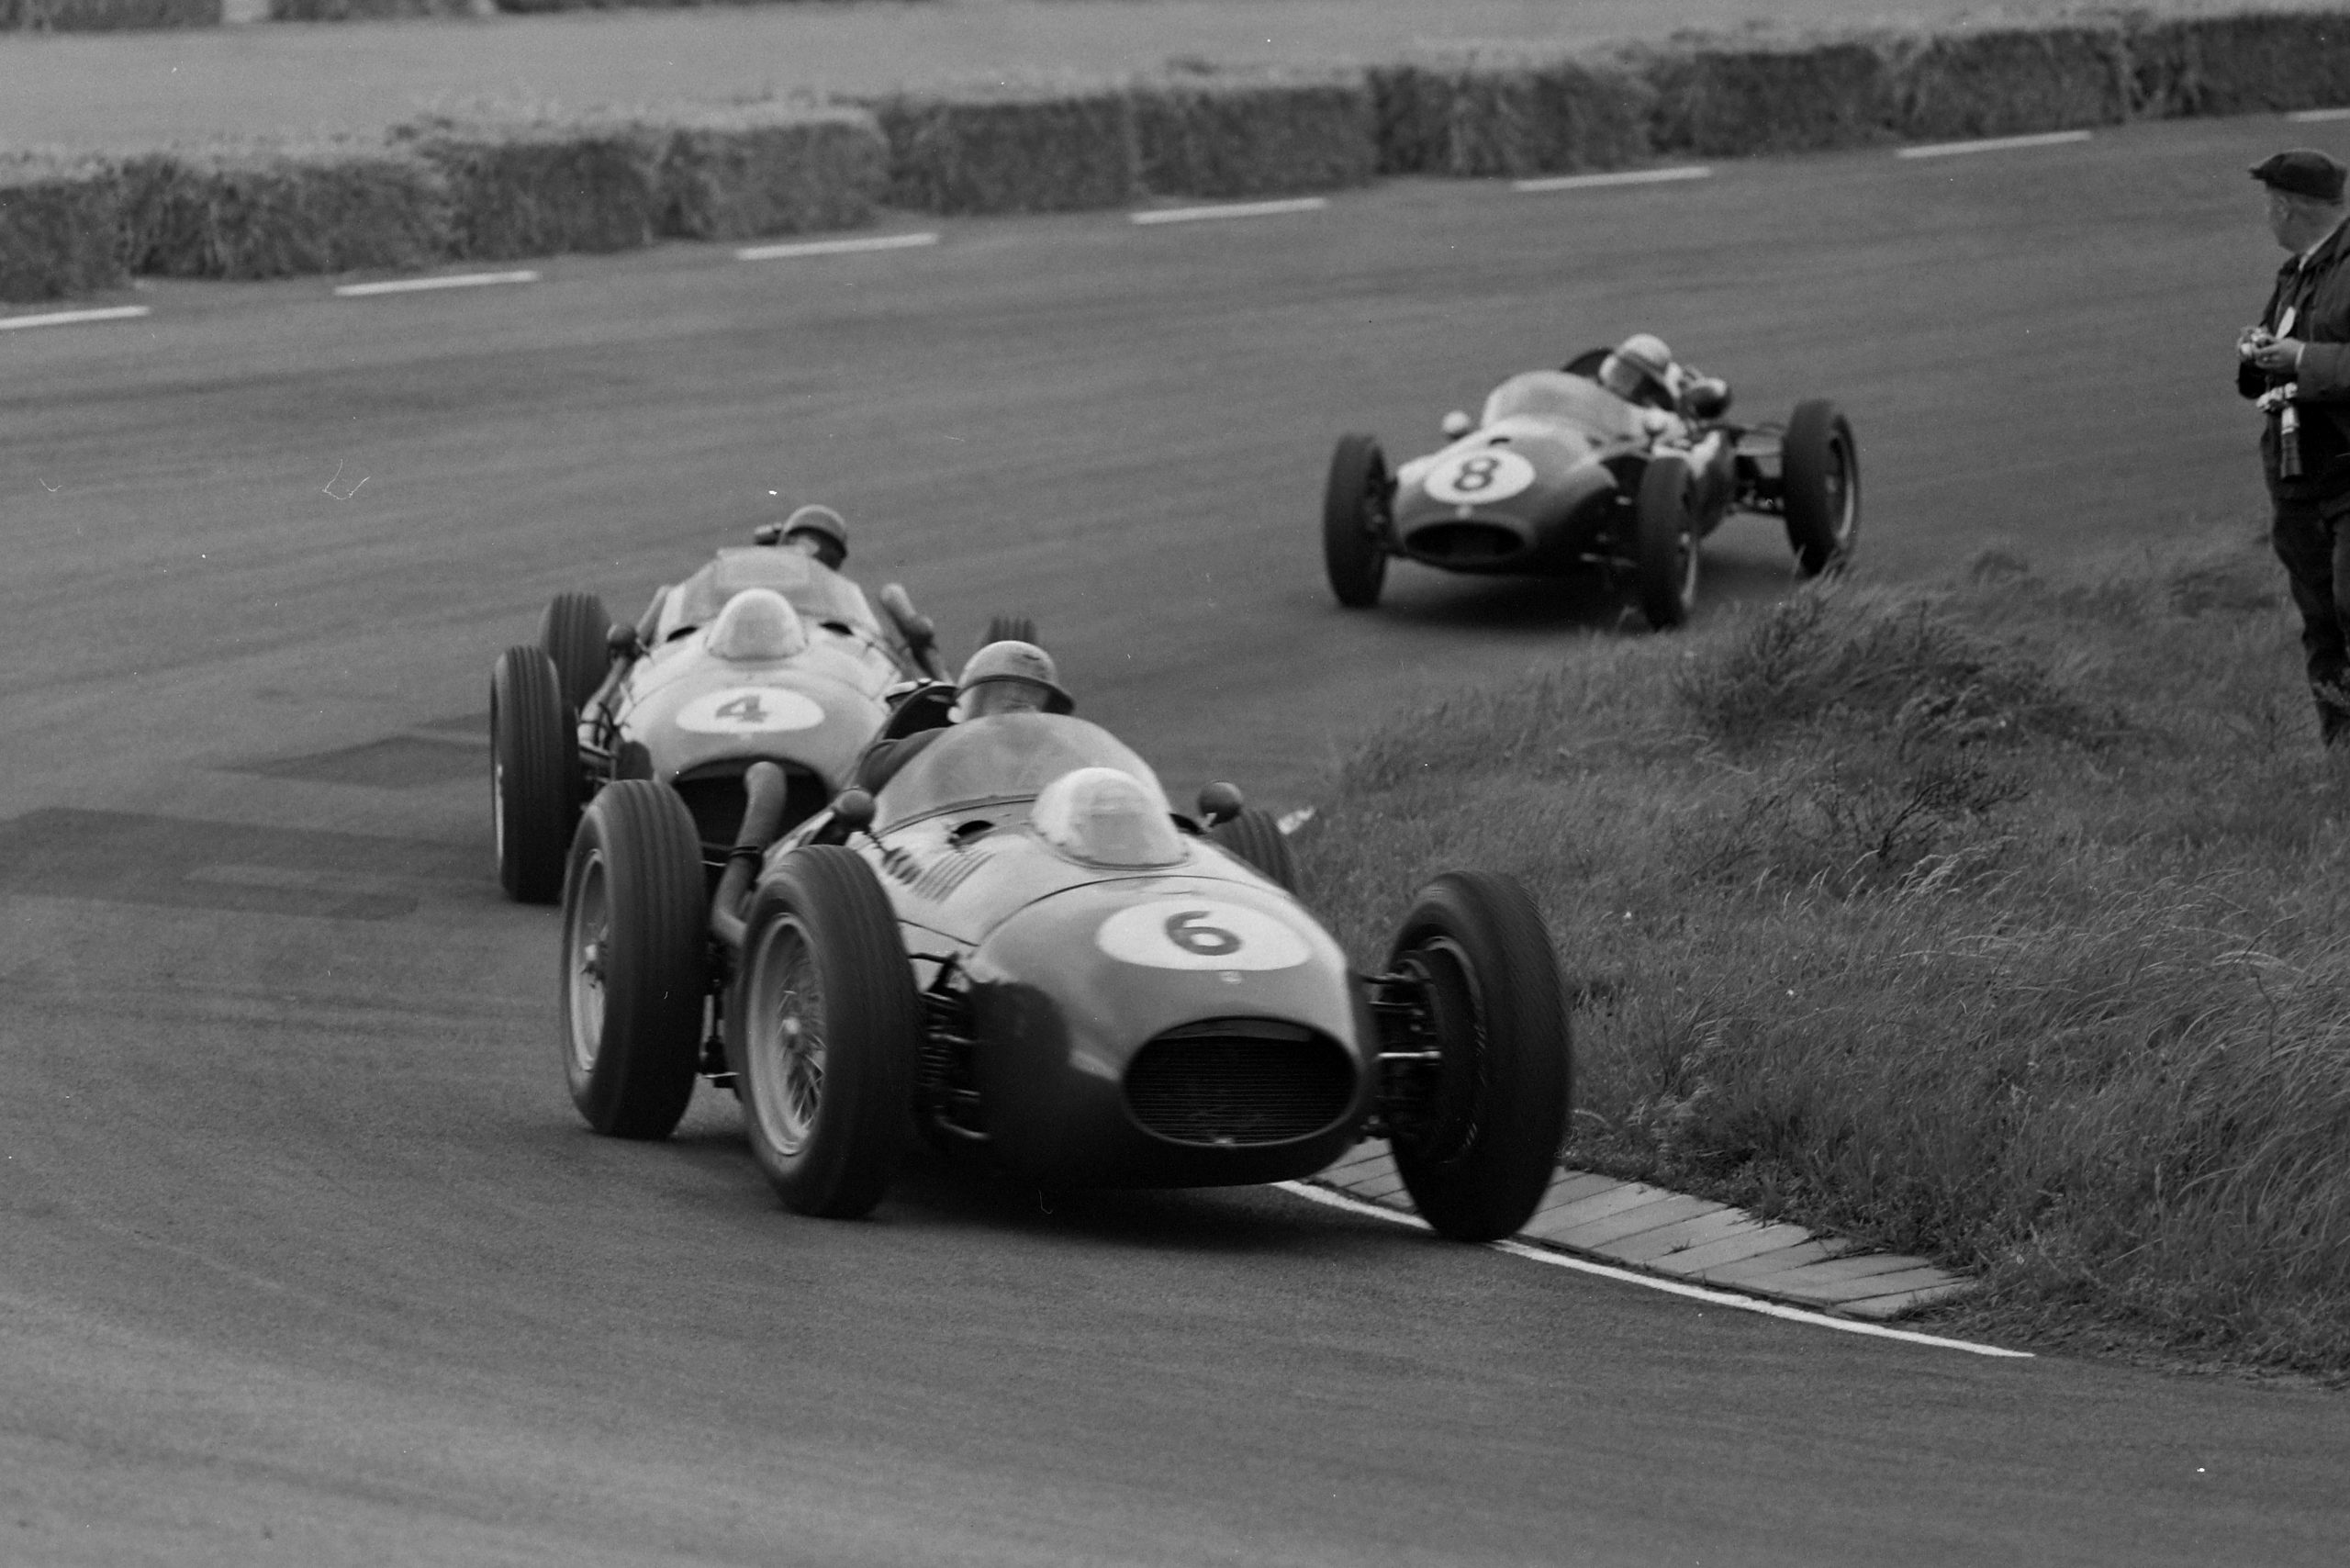 Luigi Musso in his Ferrari 246, leads Peter Collins also in a Ferrari 246, and Jack Brabham in his Cooper T45 Climax.